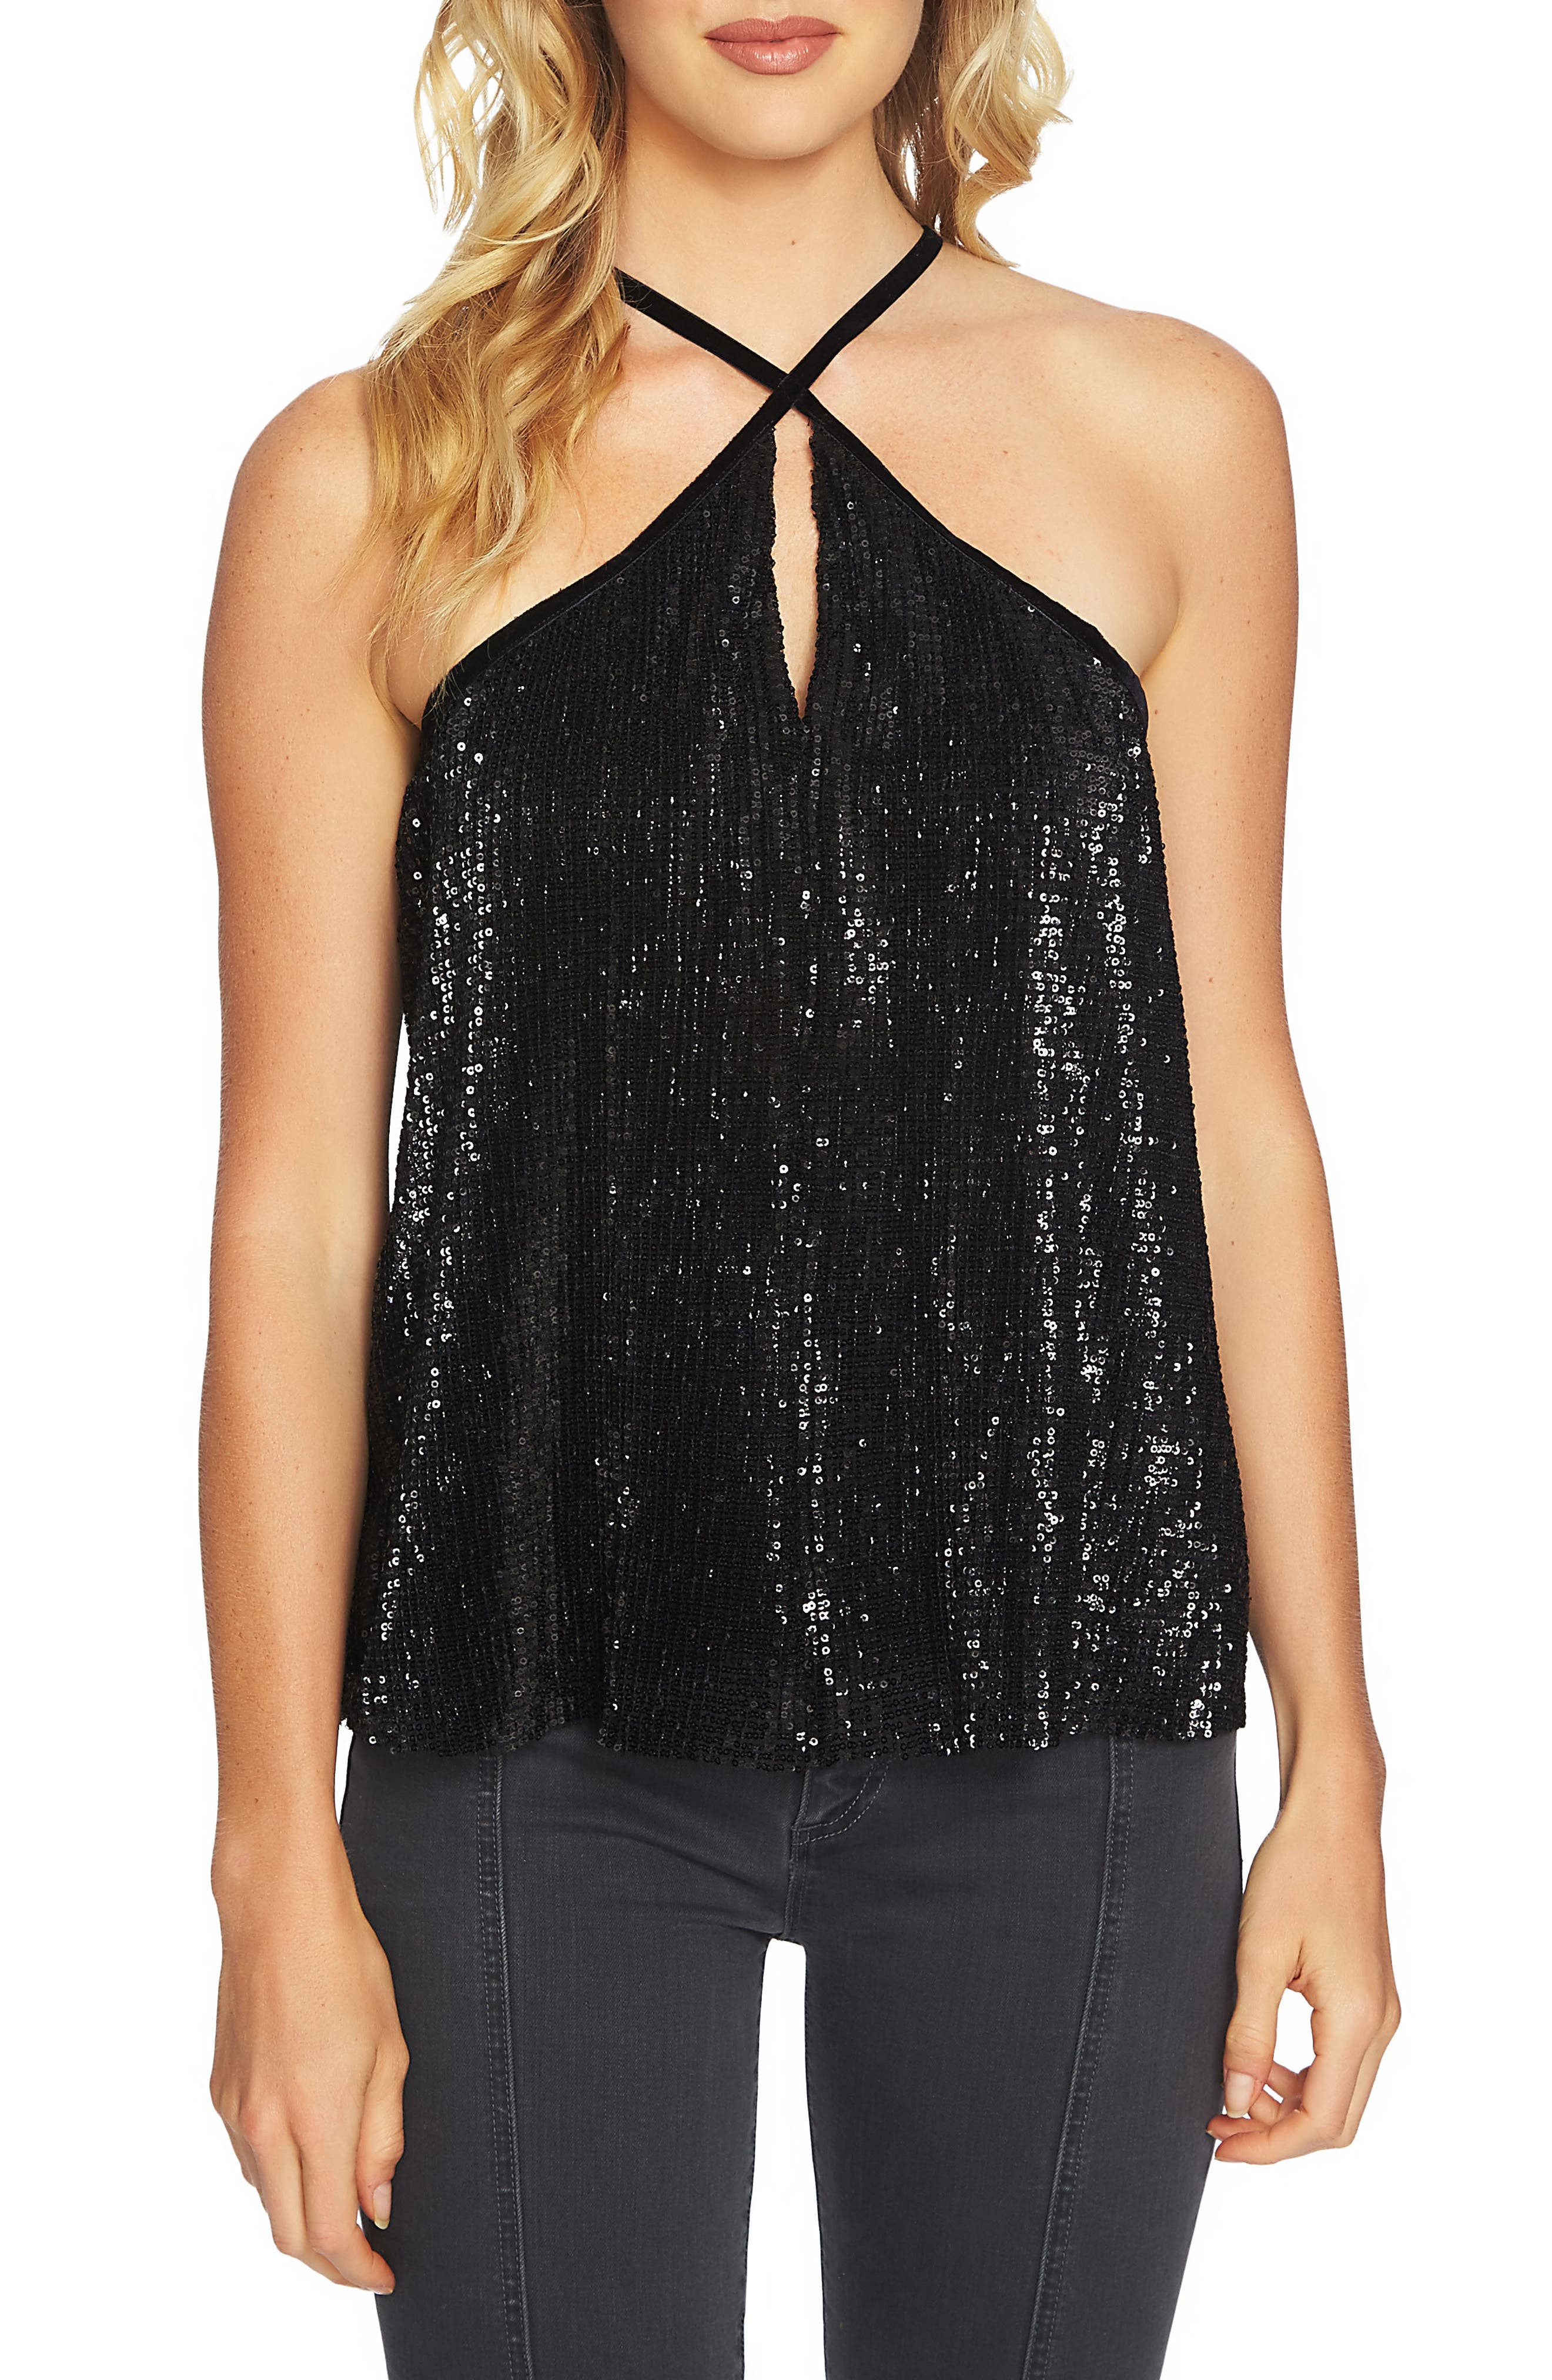 Alternate Image 1 Selected - 1.STATE Sequin Halter Camisole